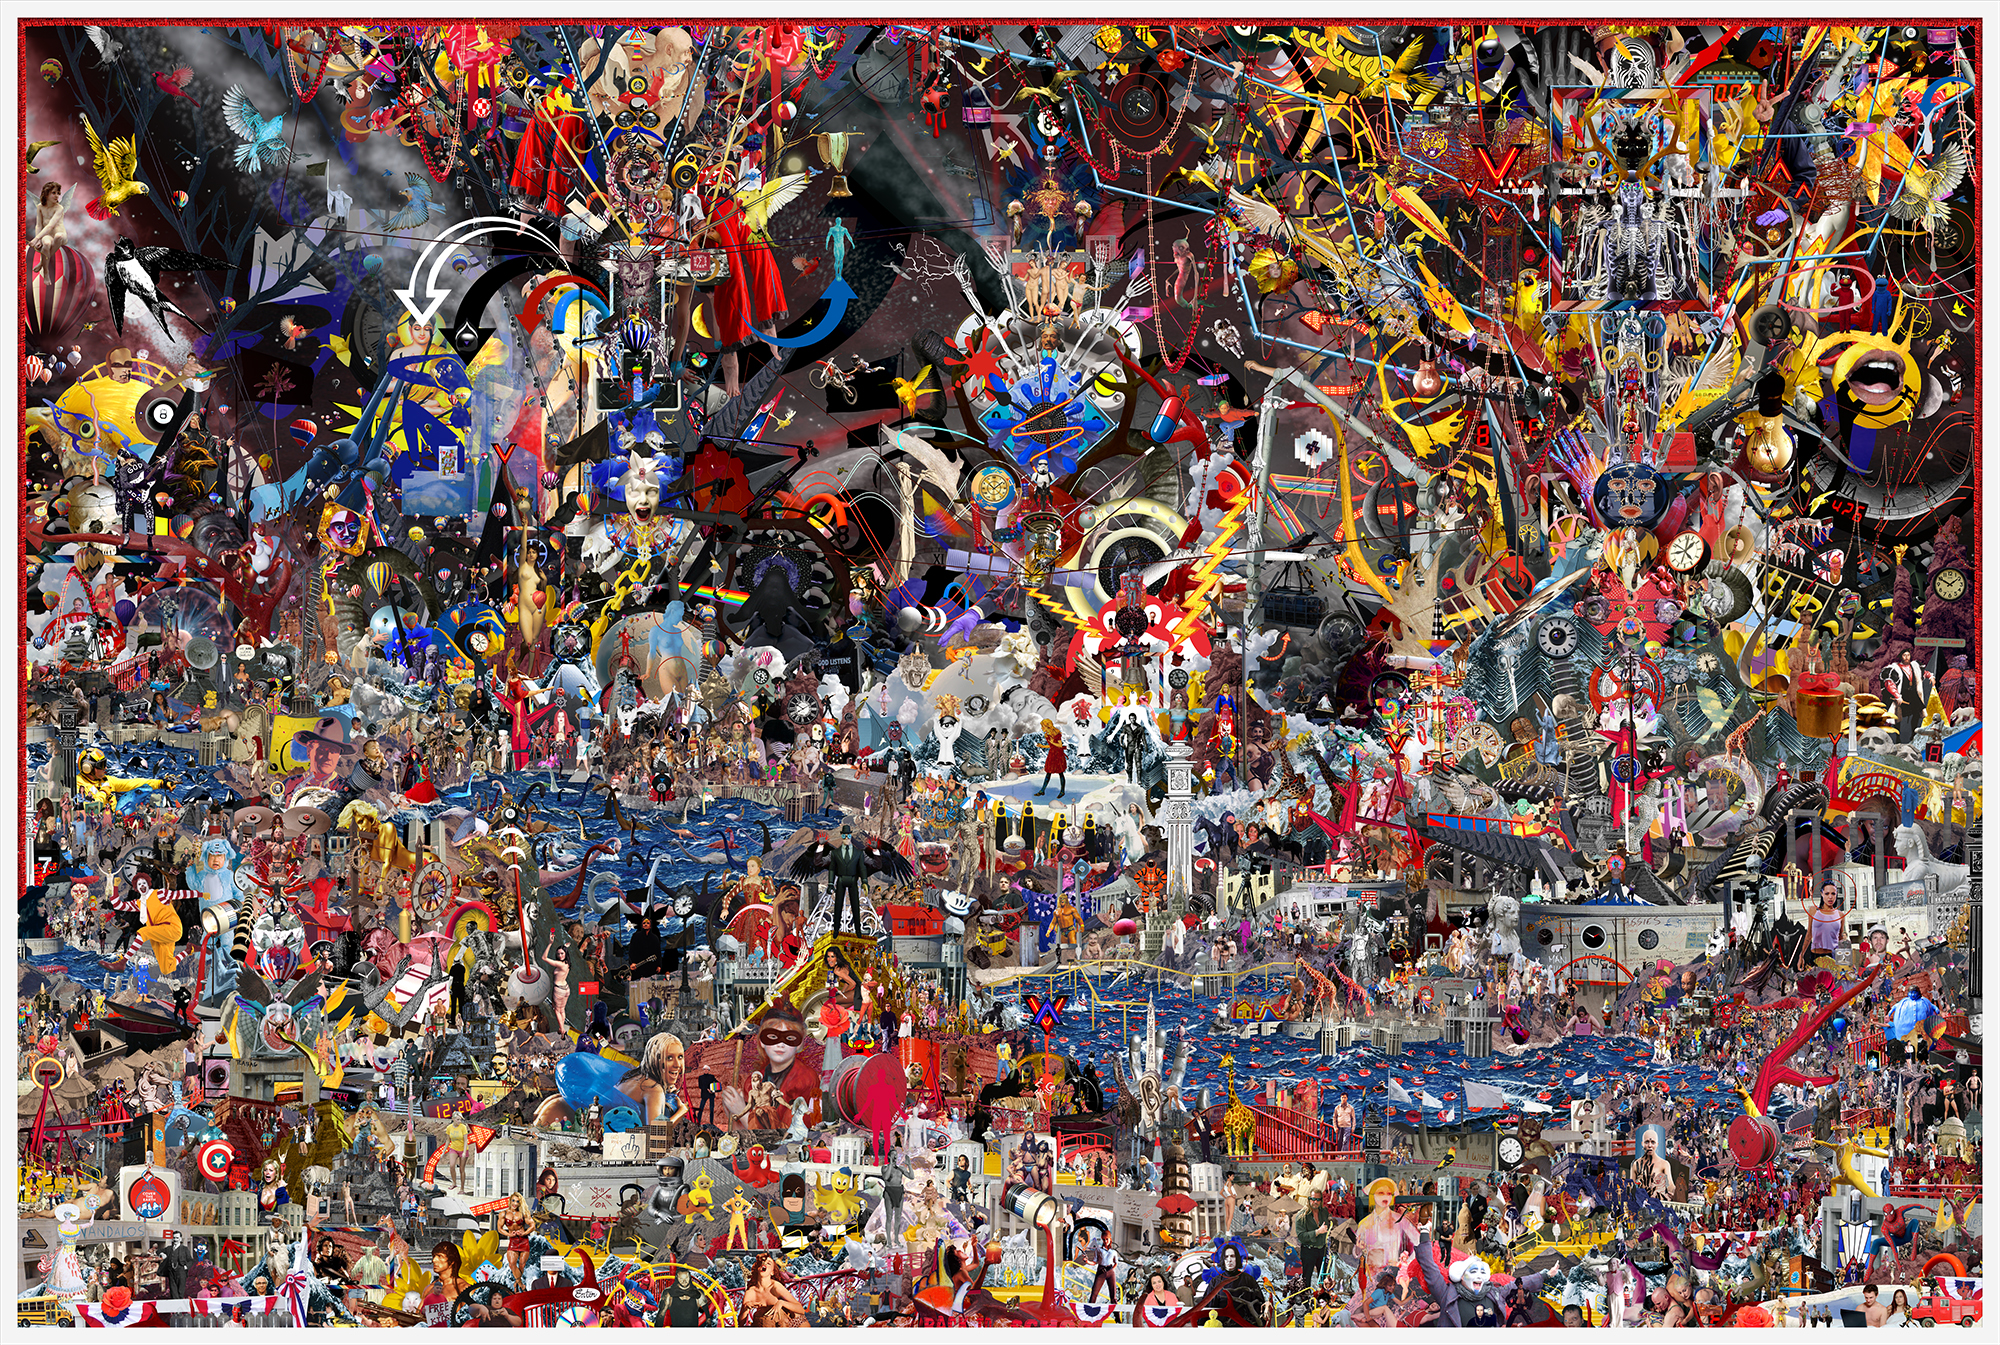 Case Simmons, Simmons & Burke, To Your Scattered Bodies Go #1, Kim Light Gallery, Hieronymus Bosch, Lightjet Print, Digital Collage,Digital Art, Photoshop Collage, Contemporary Collage,Case Simmons Art, Case Simmons Artist, Collage Fine Art, Lightbox Gallery